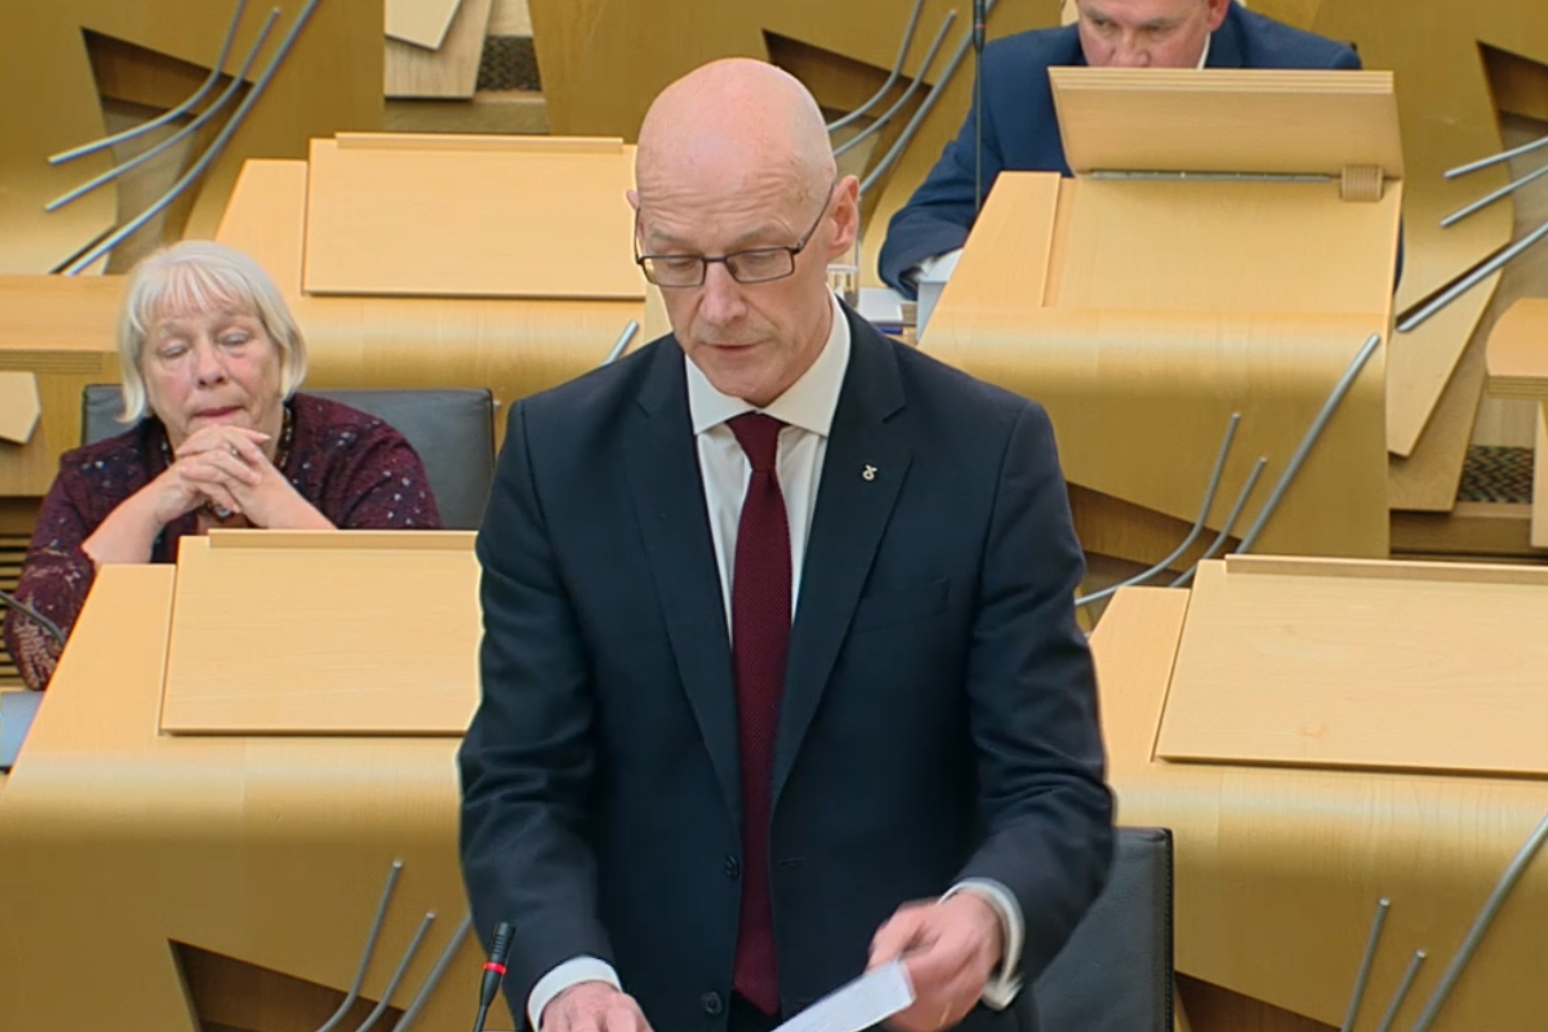 Pupils to receive original marks estimated by teachers, Swinney announces